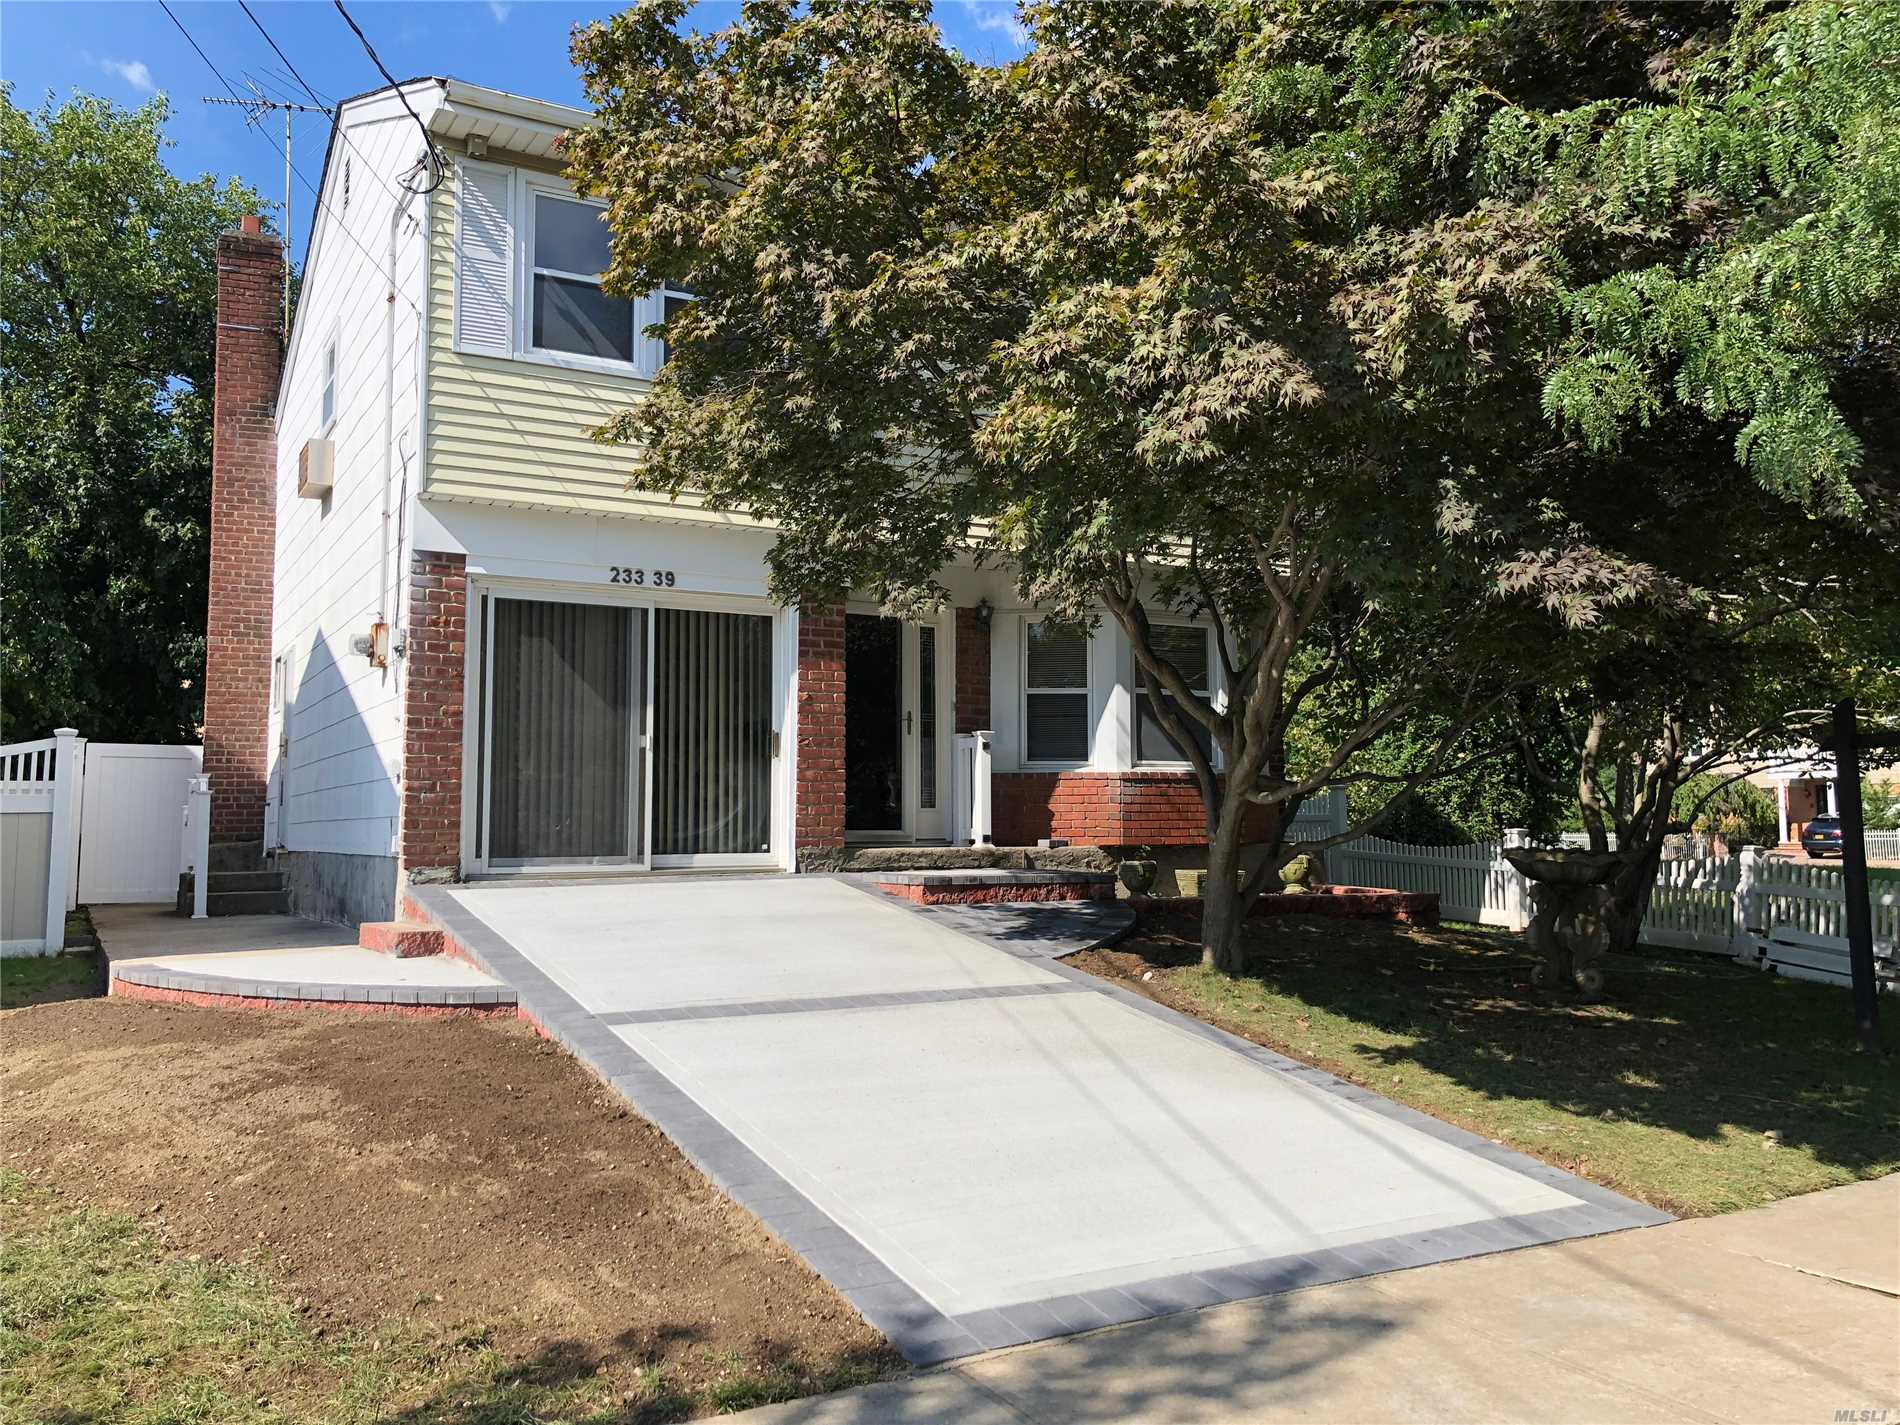 One Family Home With Split Level Layout In Beautiful And Quite Douglaston Neighborhood. Sd#26. Spacious Bright Rooms, Large Eat-In-Kitchen. Master Bedroom With Full Bath, Walk-In Closet. Lots Of Closets In The House. Private Backyard, New Beautiful Driveway For 2 Cars. Move In Condition! Conveniently Located Close To Local Shops, Restaurants, Few Blocks To Lirr. A Must See!